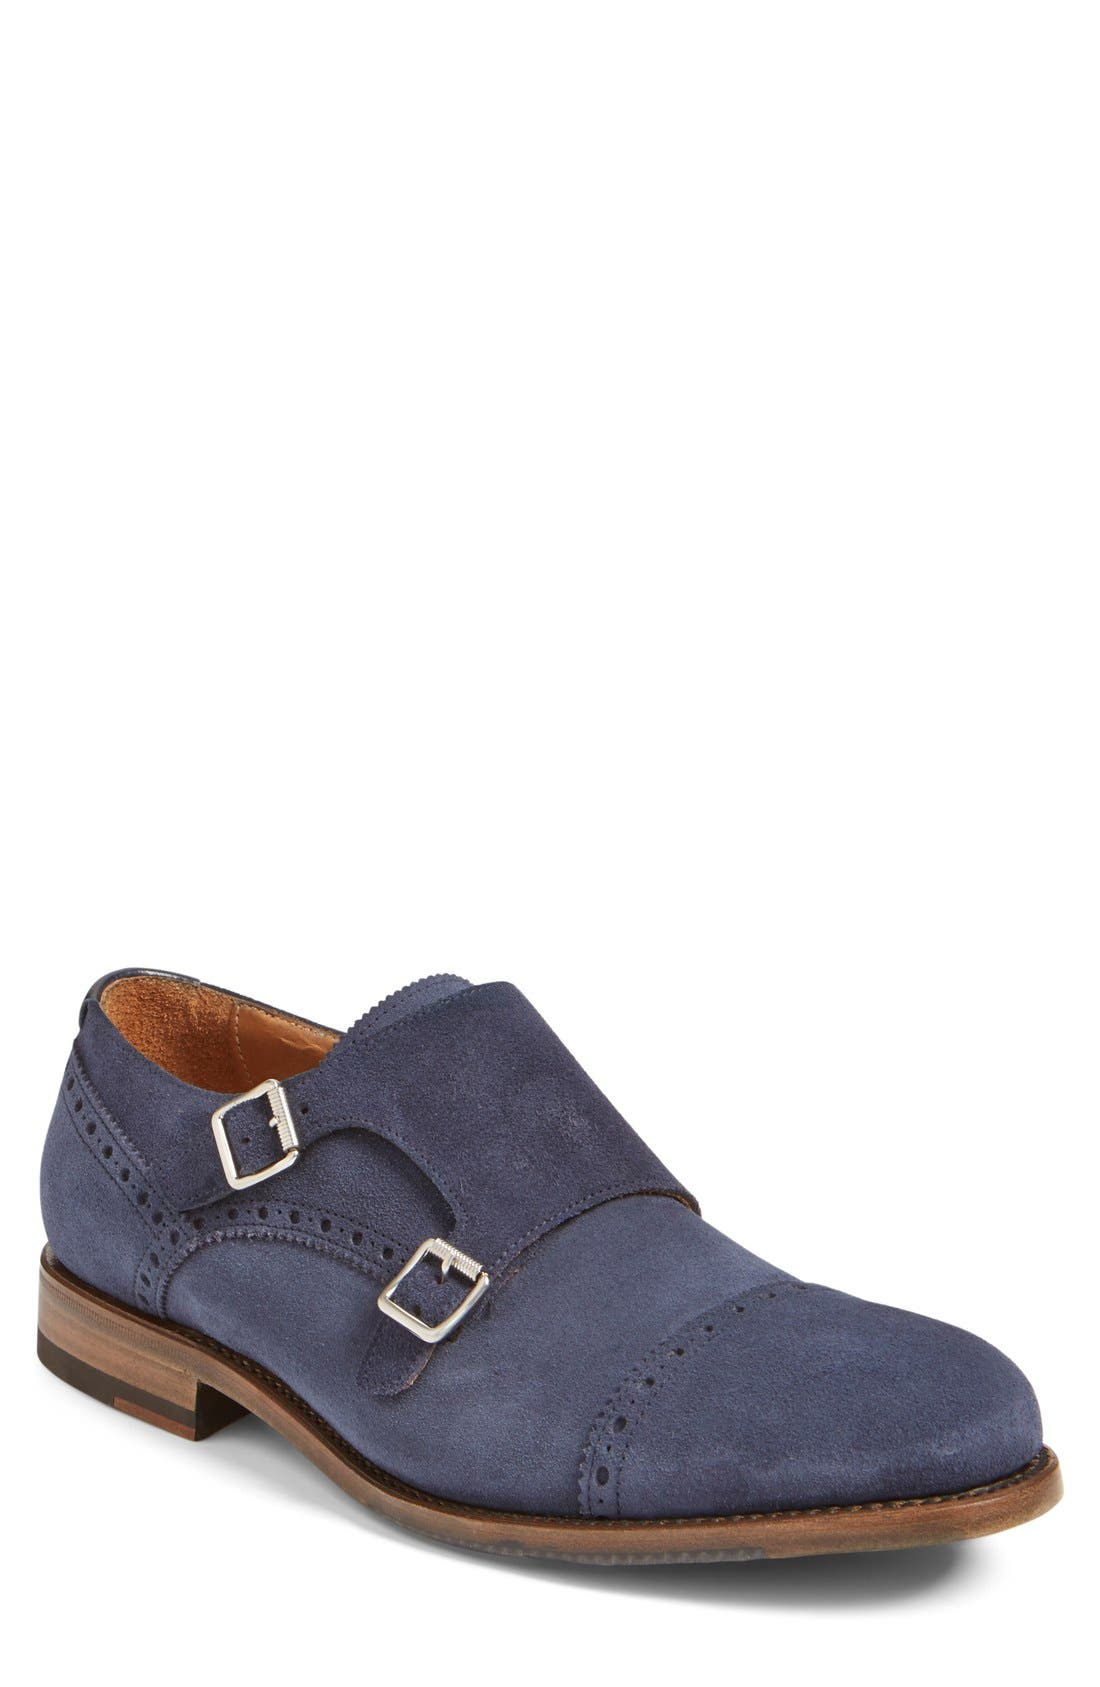 'Fallon' Weatherproof Monk Strap Shoe,                         Main,                         color, Navy Suede